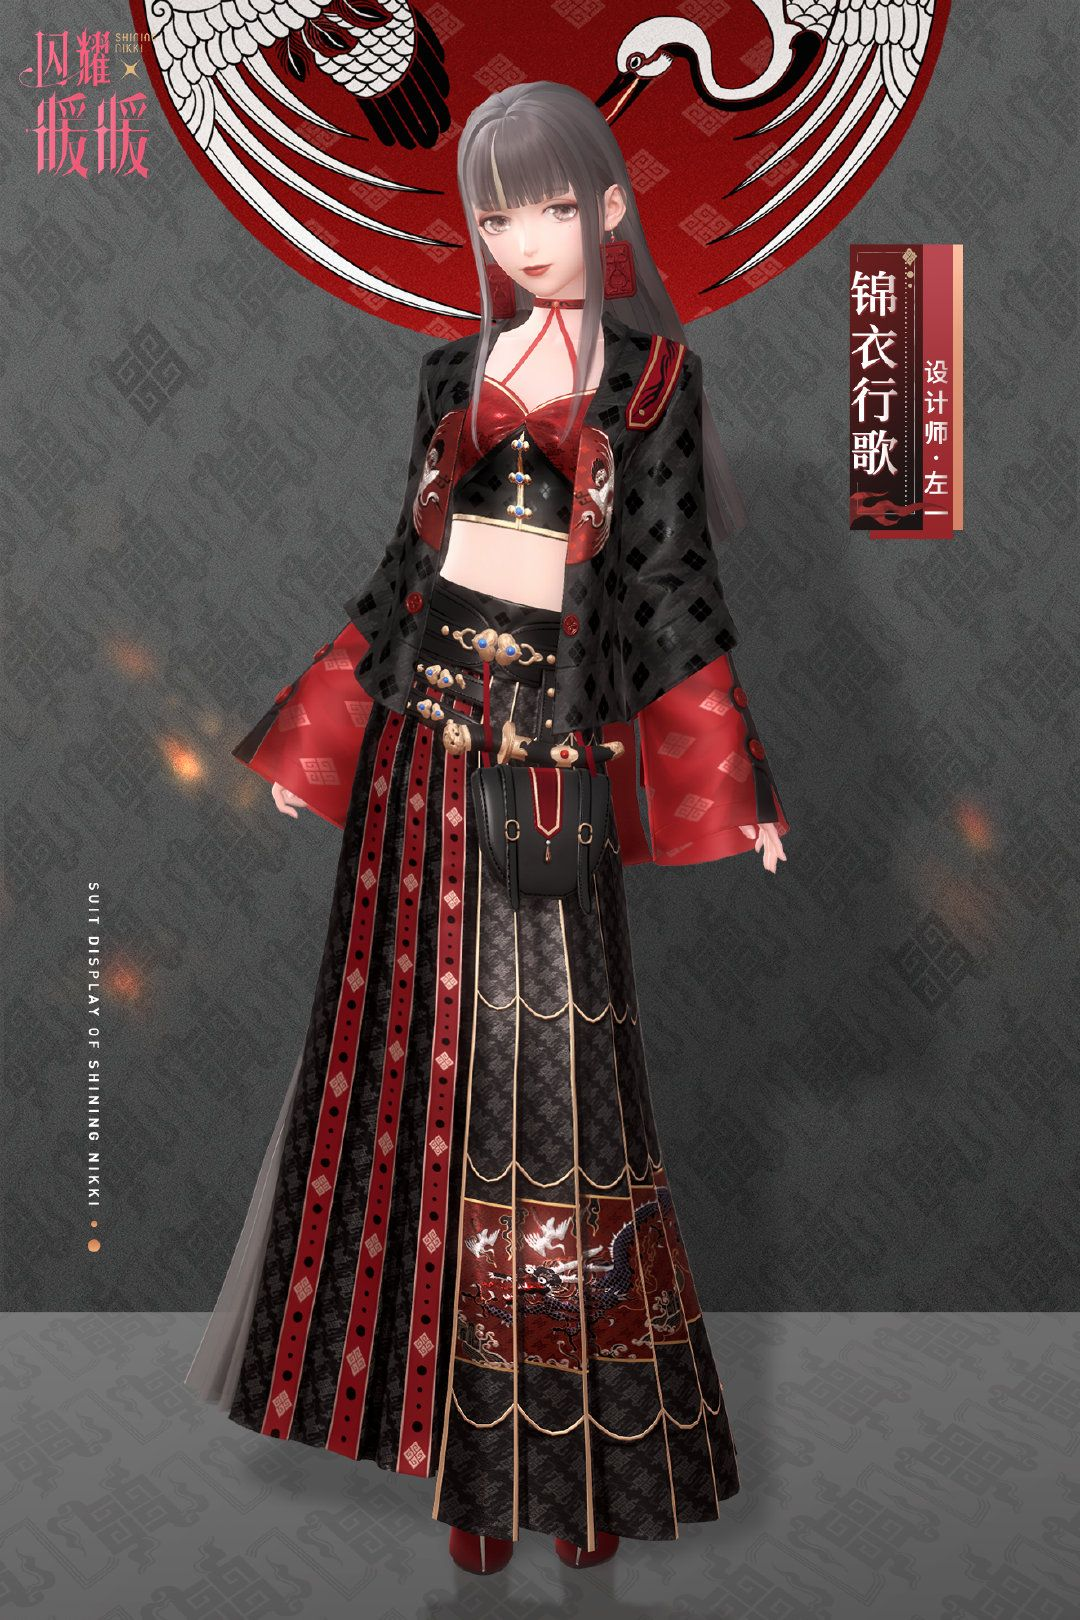 Pin by 老琦 on 闪耀暖暖 in 2020 Anime outfits, Fashion